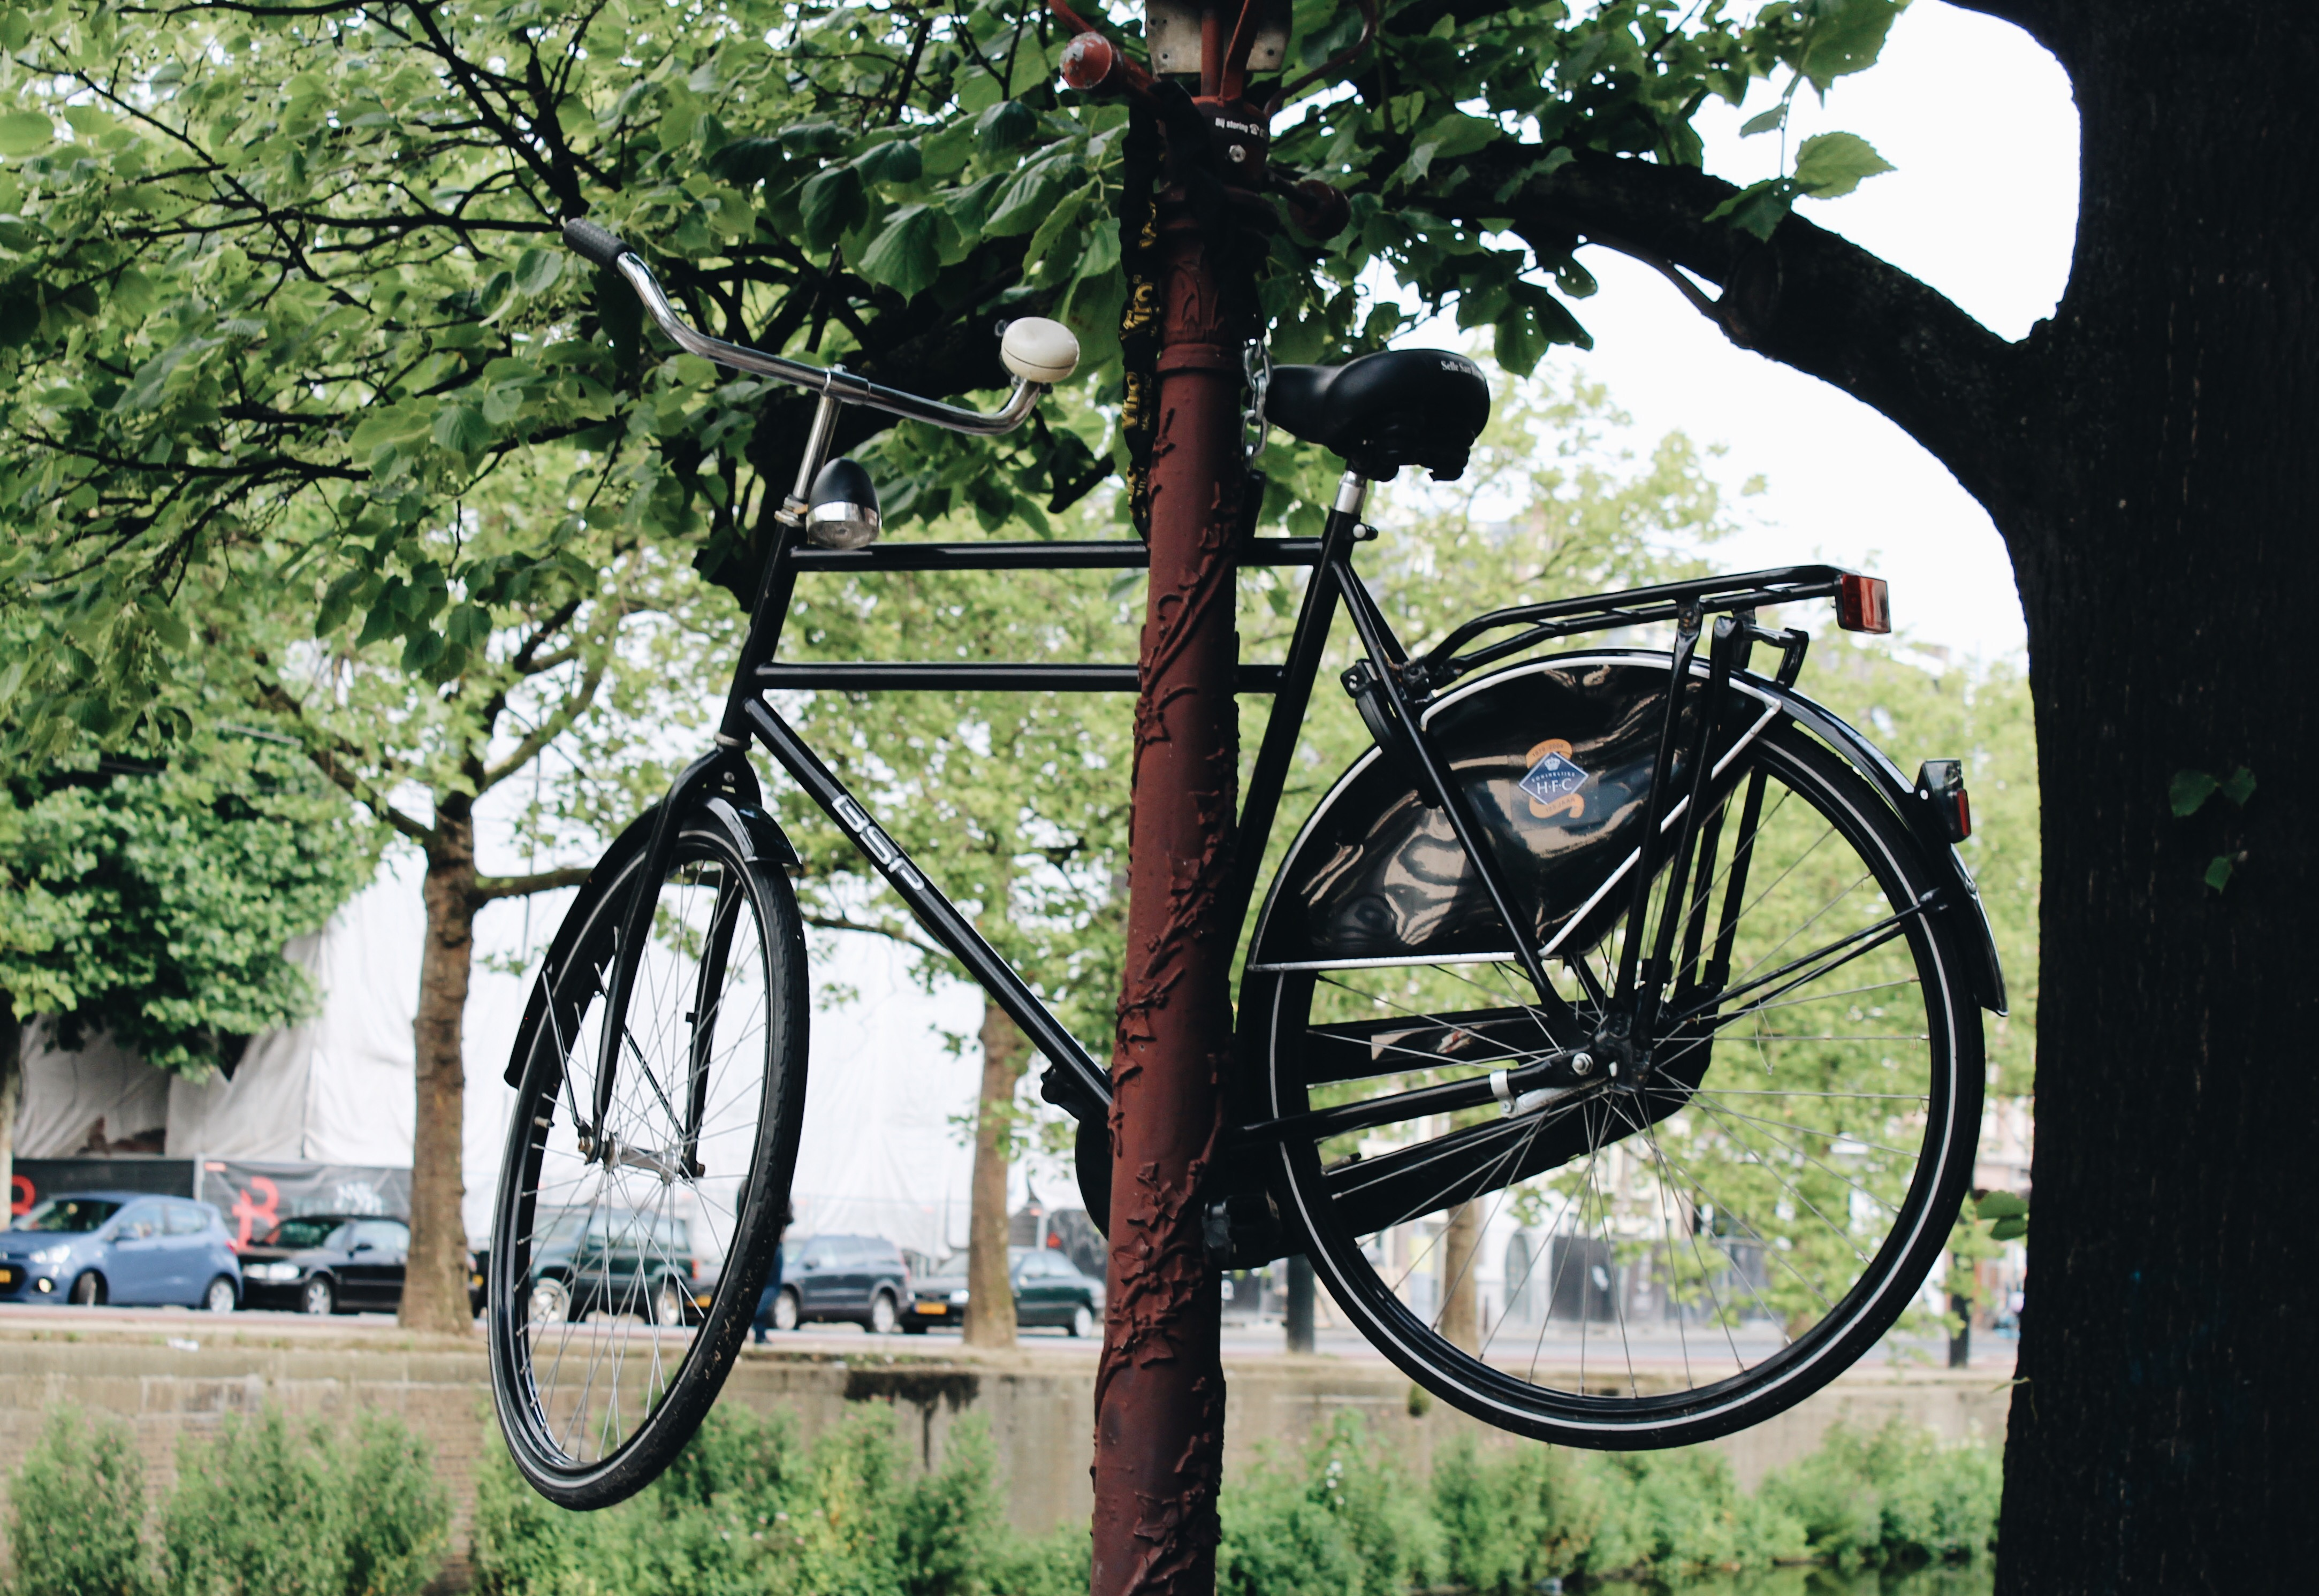 Bike Chained to a Lamppost